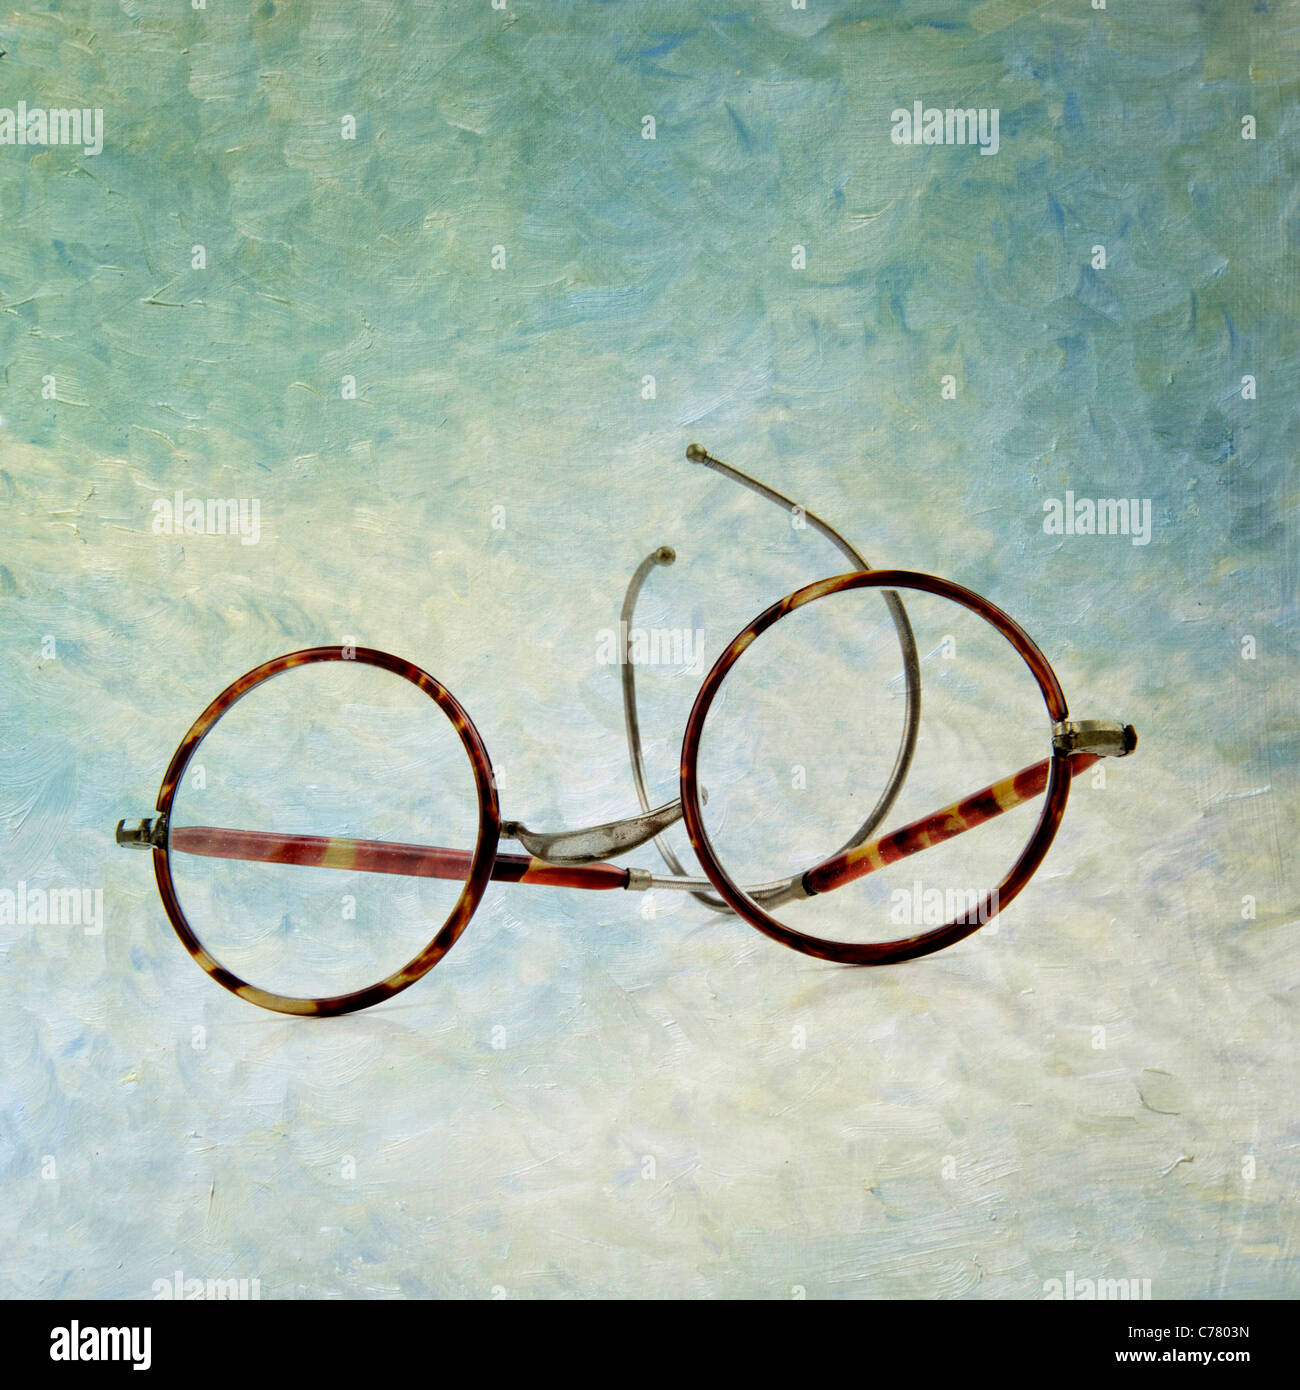 Pair of glasses / spectacles - textured art image - Stock Image